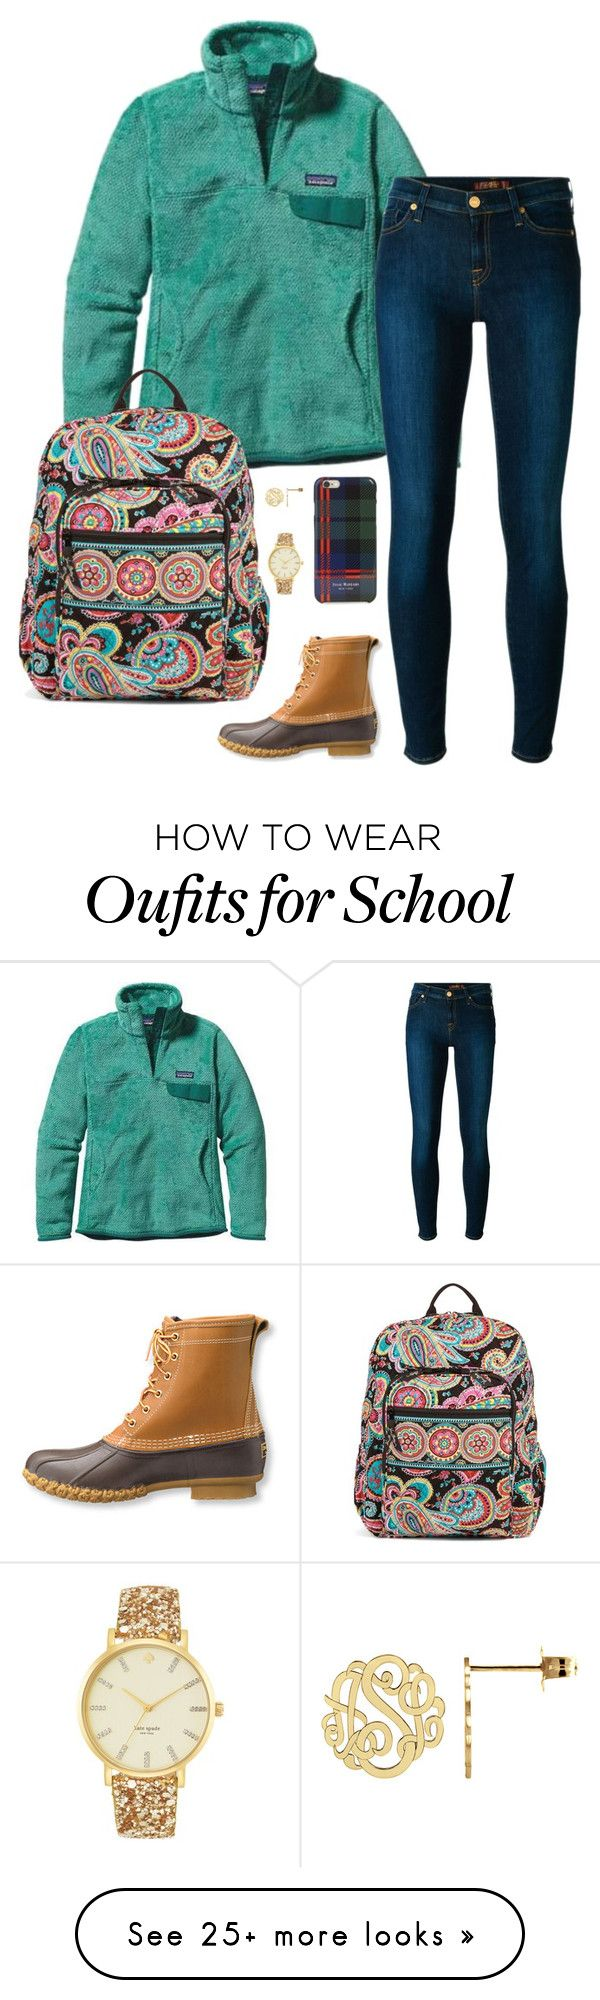 """School starts back on Monday... "" by sc-prep-girl on Polyvore featuring Patagonia, 7 For All Mankind, L.L.Bean, Vera Bradley, Kate Spade and Isaac Mizrahi"